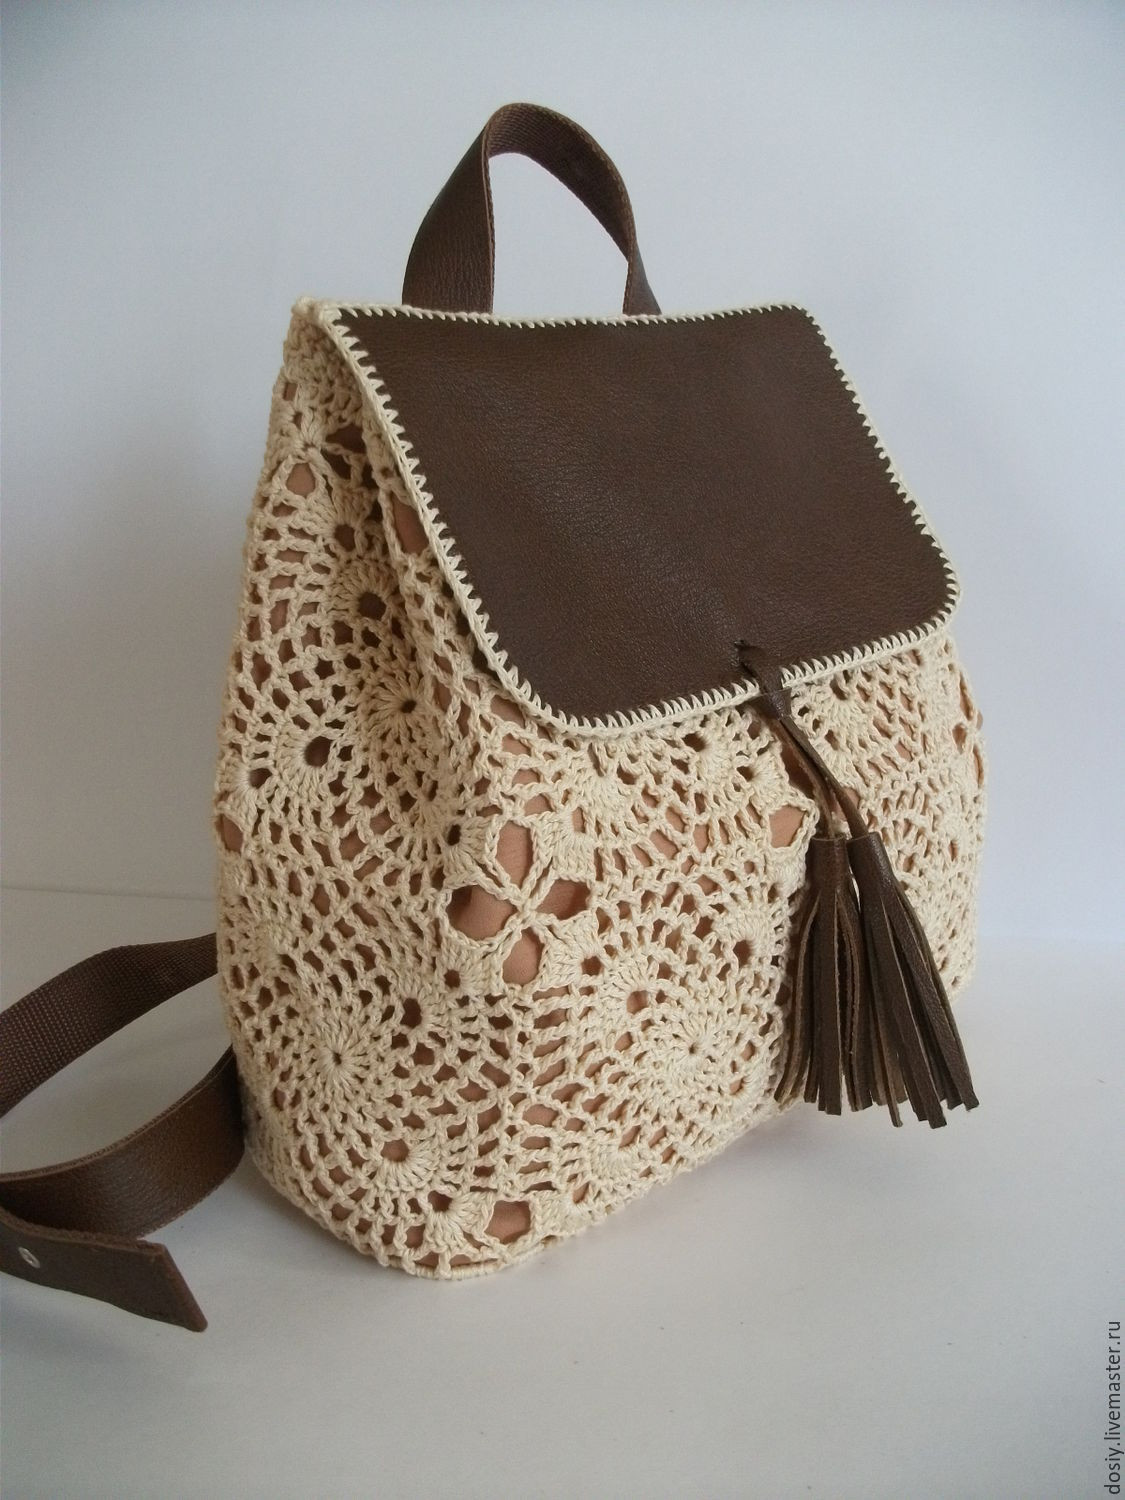 Crochet Backpack Best Of Crochet Backpack Romantic – Shop Online On Livemaster with Of Amazing 48 Pics Crochet Backpack